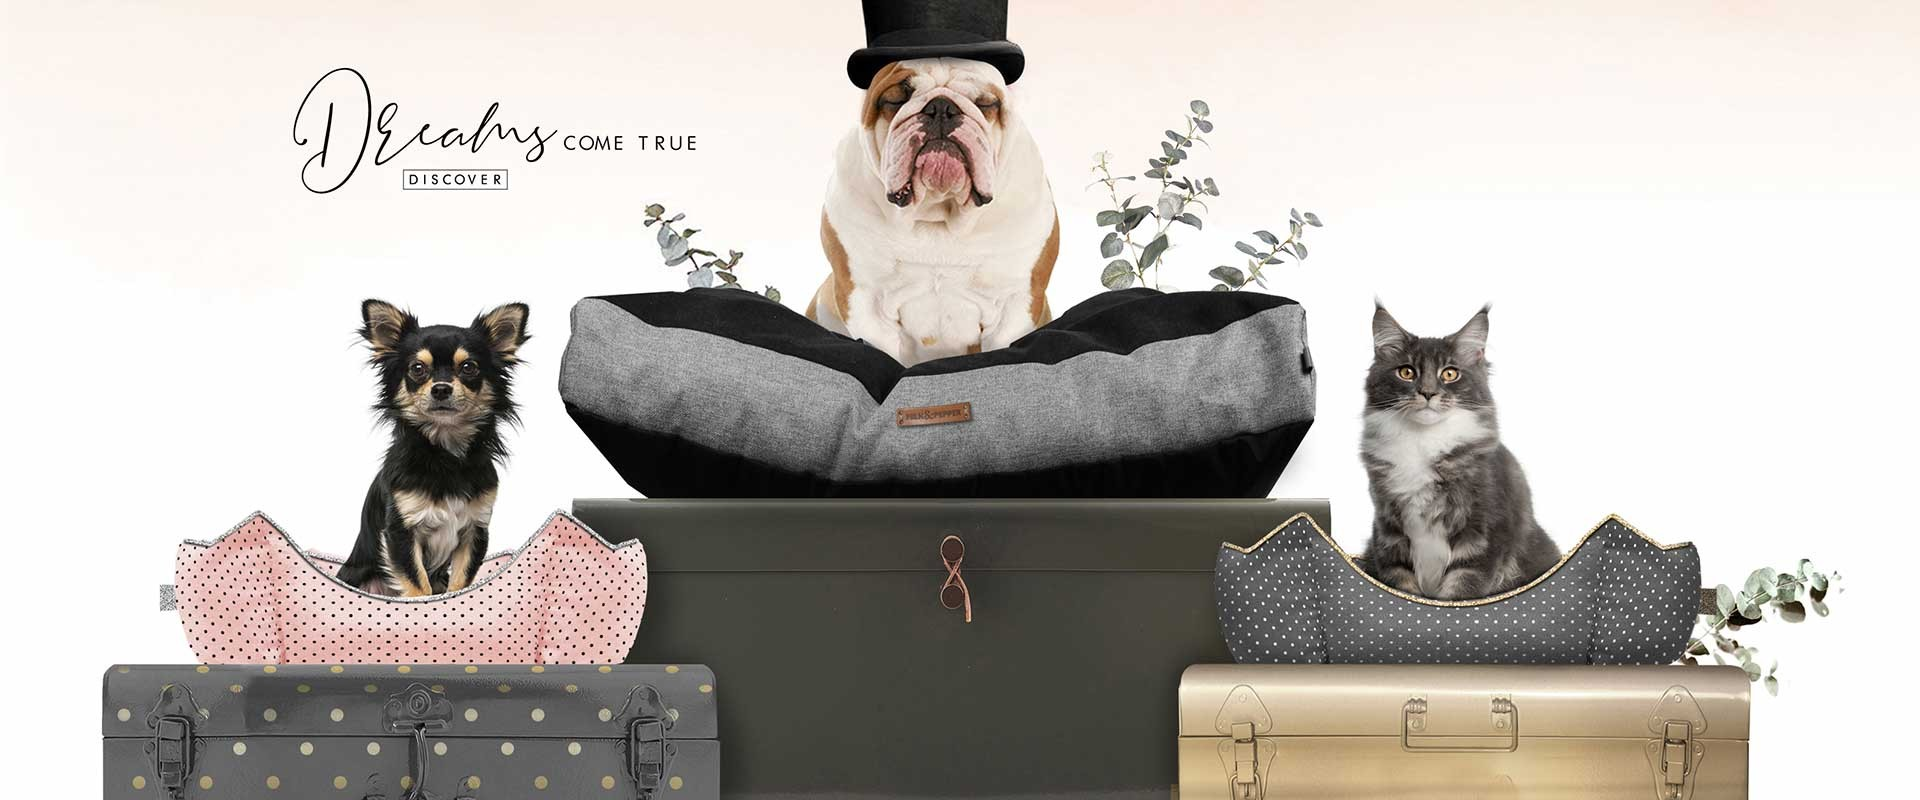 Milk & Pepper, Fashion And Accessories For Dogs & Cats - Home Winter 2018